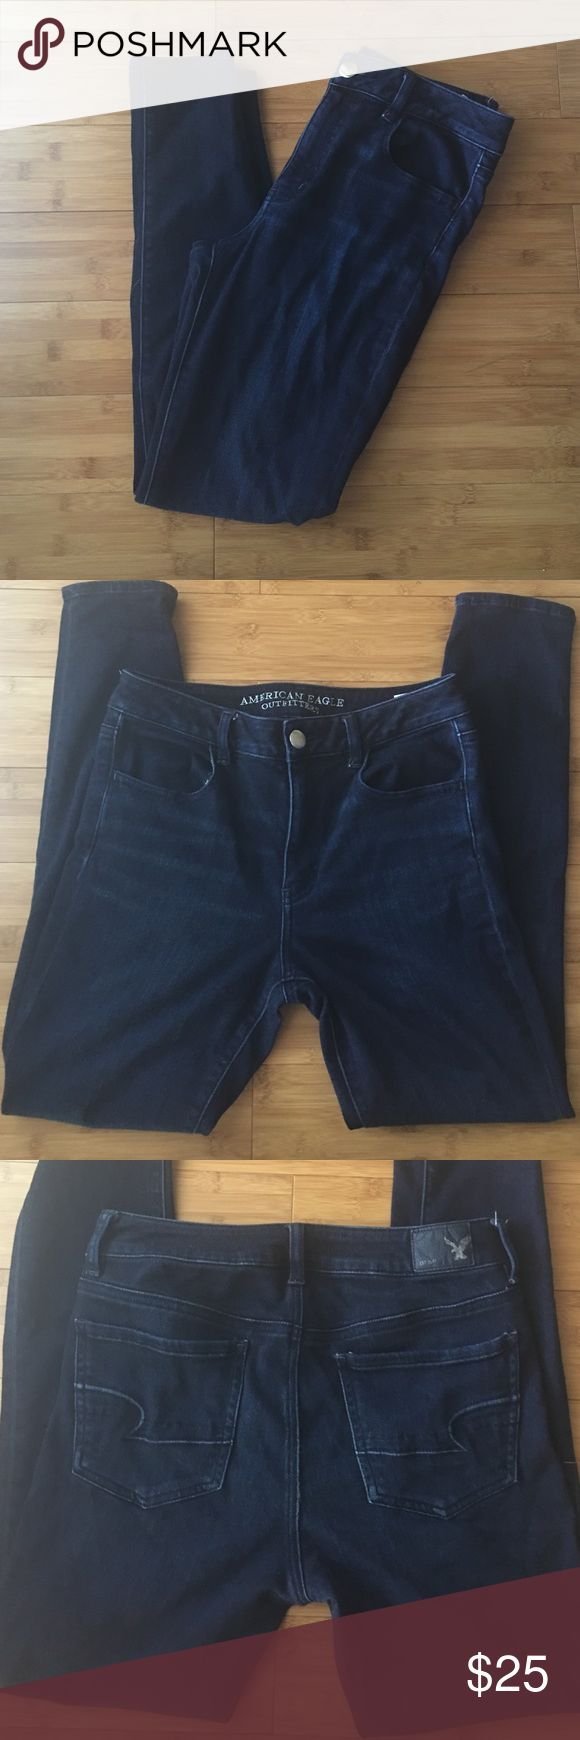 American Eagle Outfitters hi-rise legging Pre-owned and loved ❤️ but worn lightly. Inseam is about 29inches. Needs a new home. American Eagle Outfitters Jeans